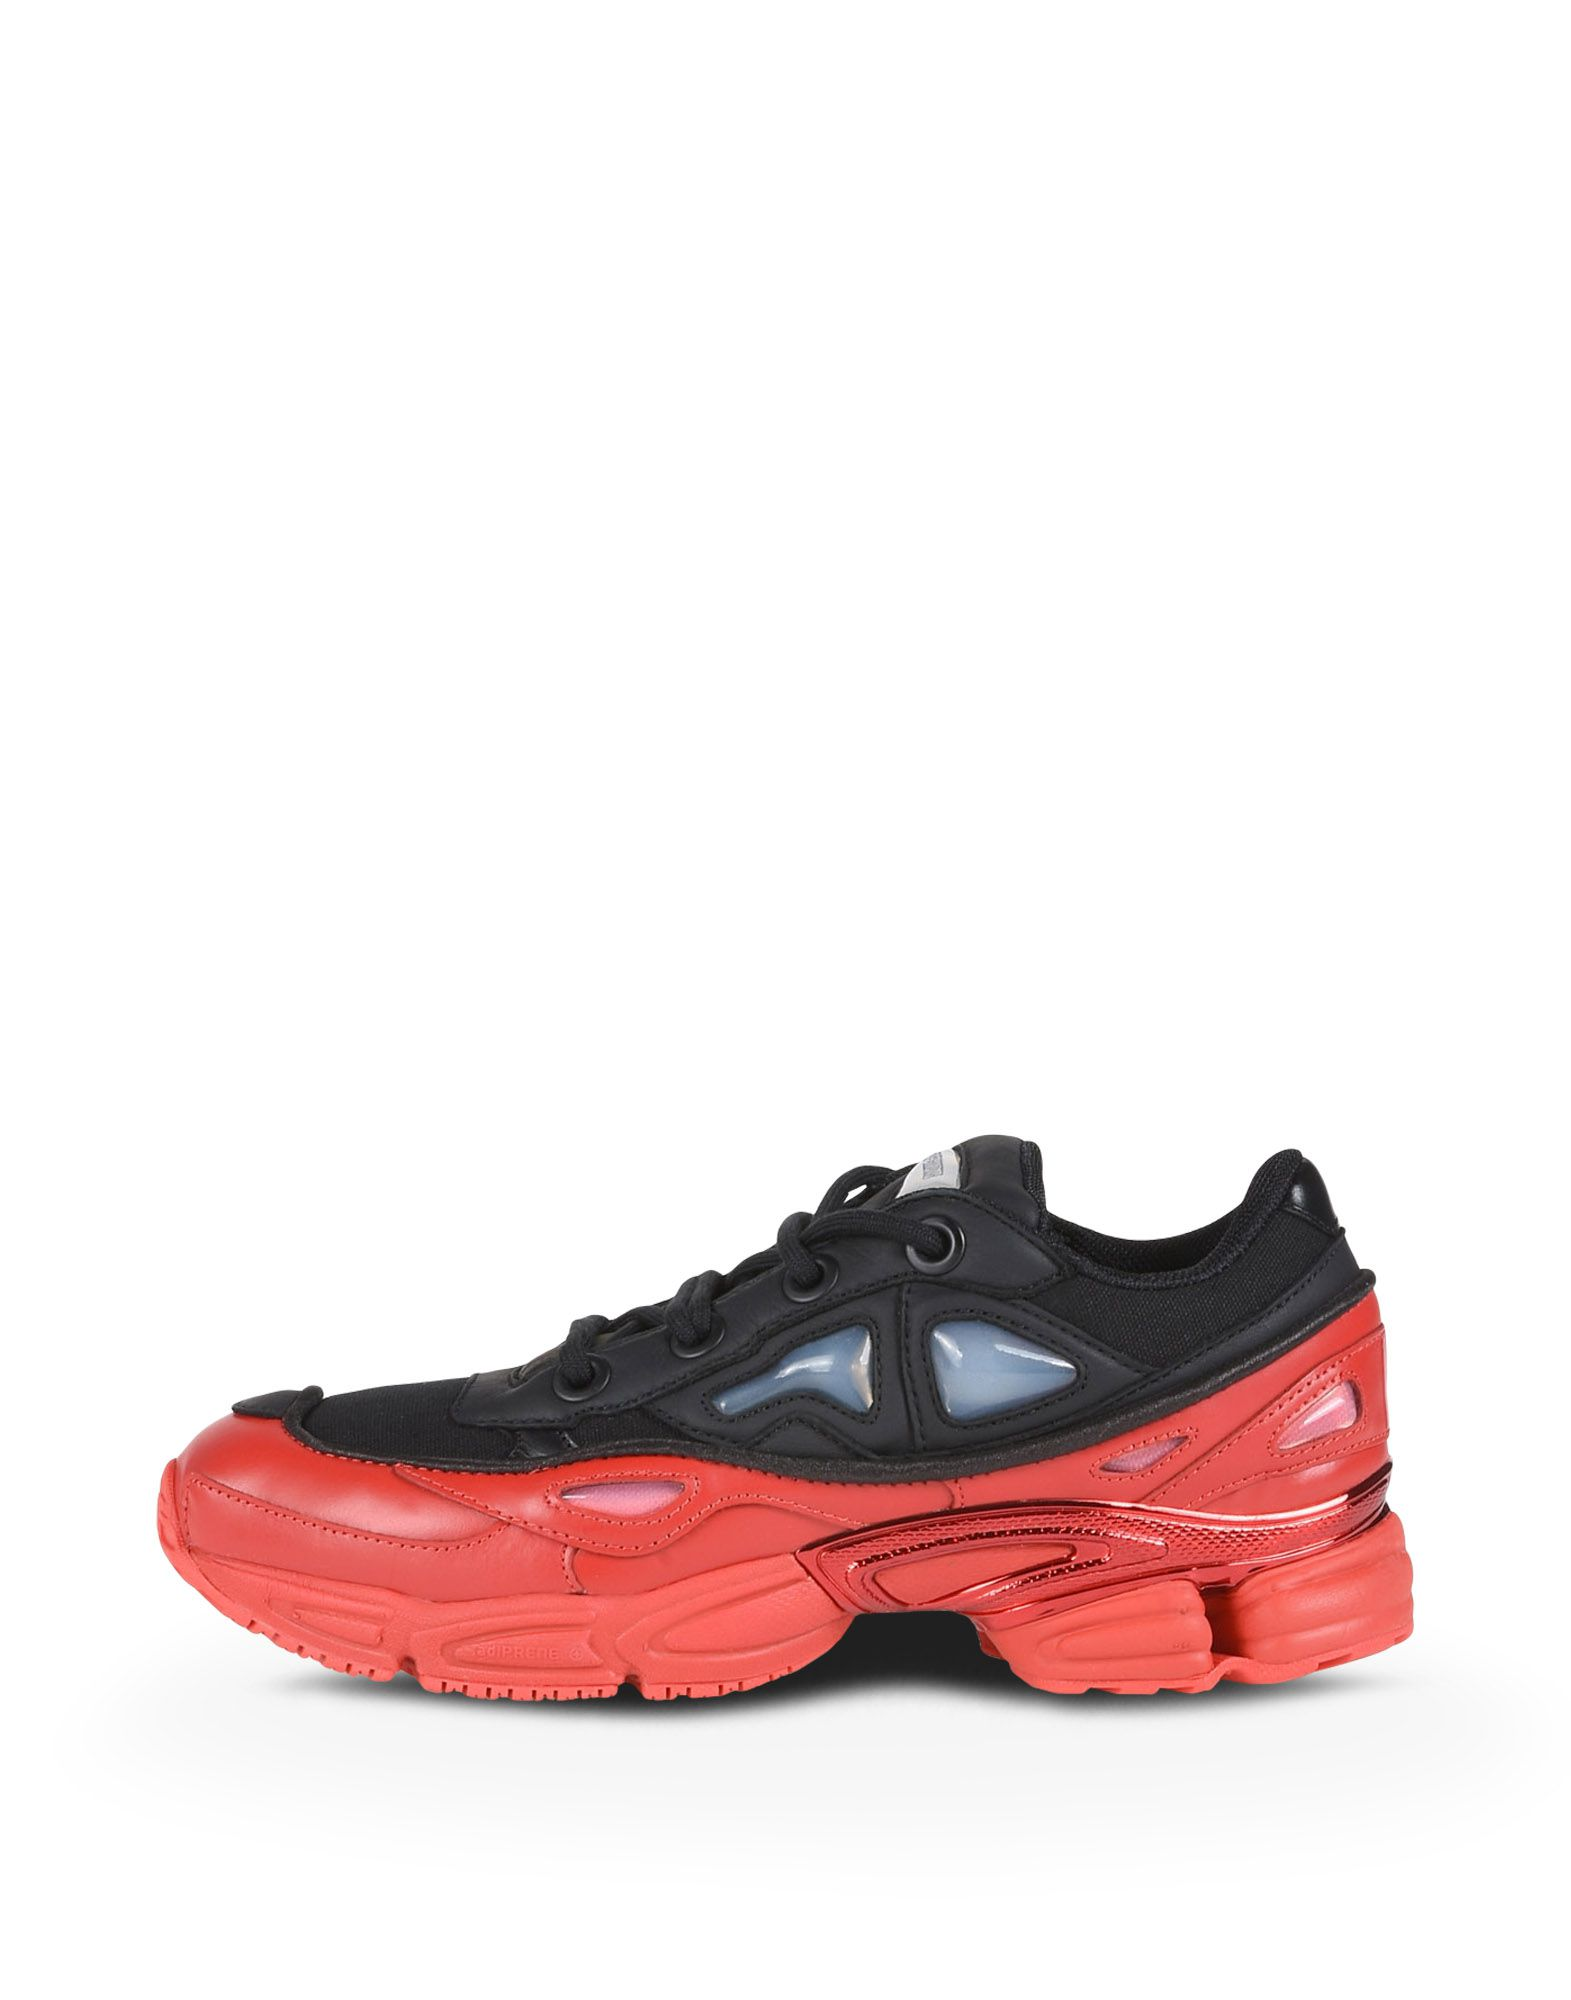 half off 30cd3 bba33 RAF SIMONS OZWEEGO III Sneakers | Adidas Y-3 Official Site